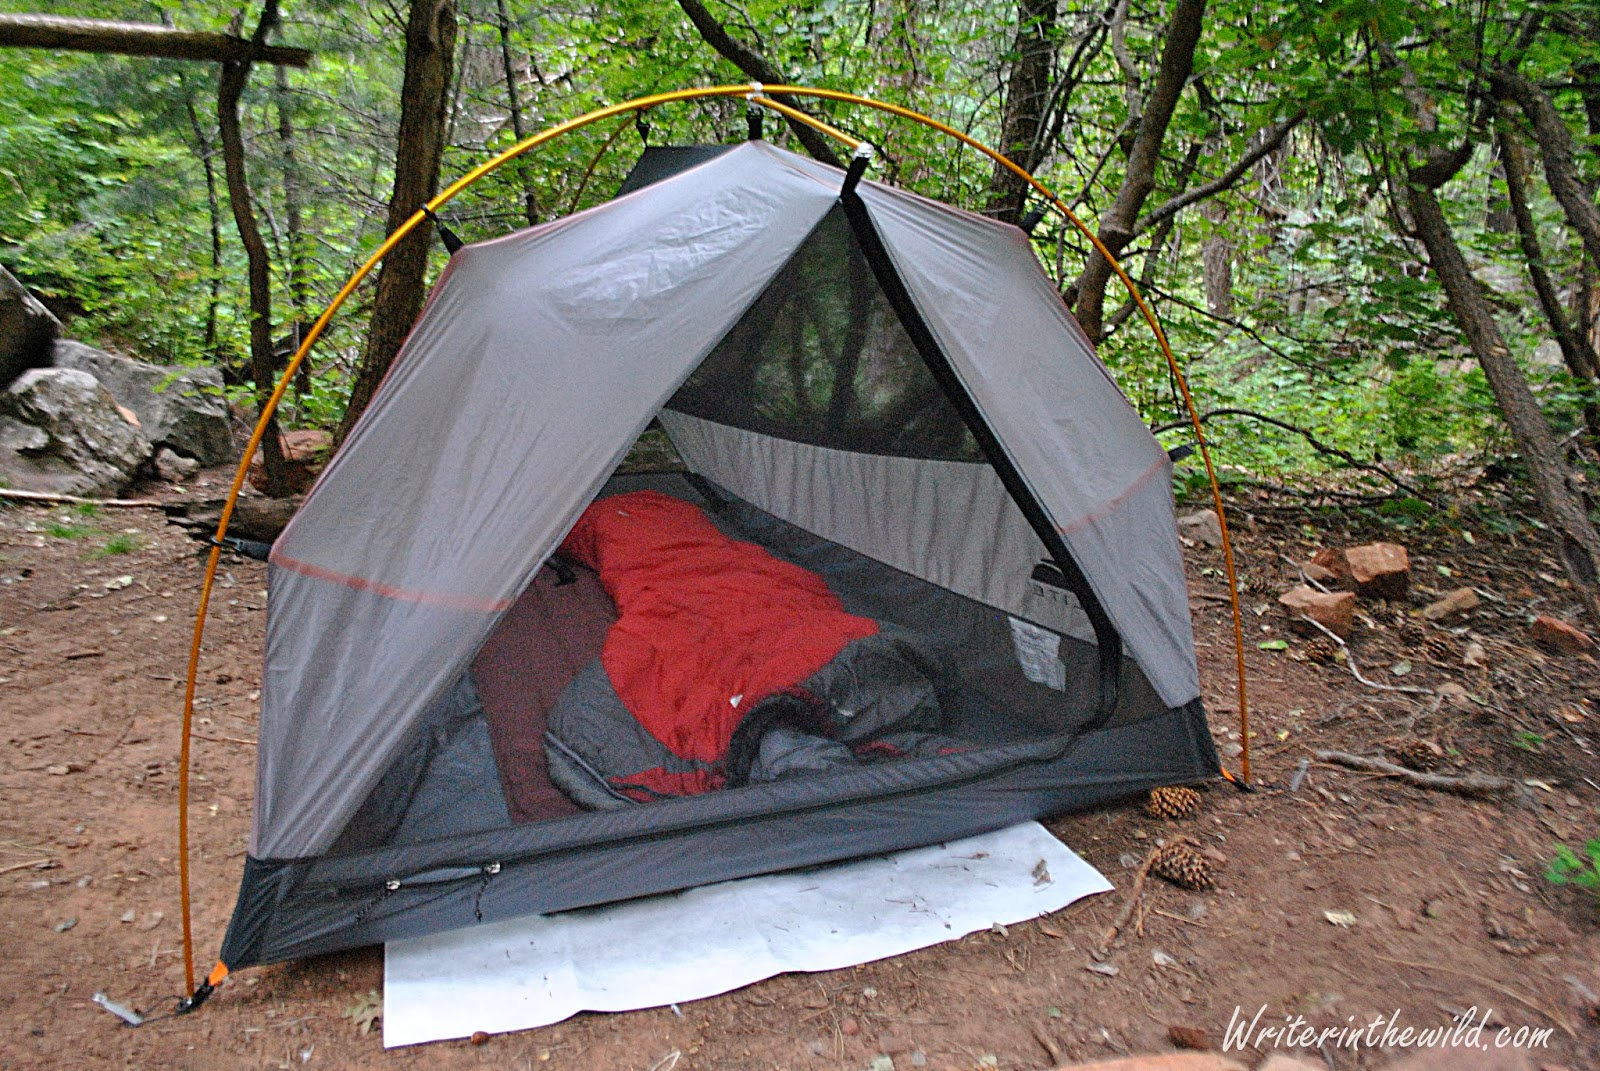 Lots of space as a solo shelter & Writer in the Wild: Gear Review: GoLite Imogene UL2